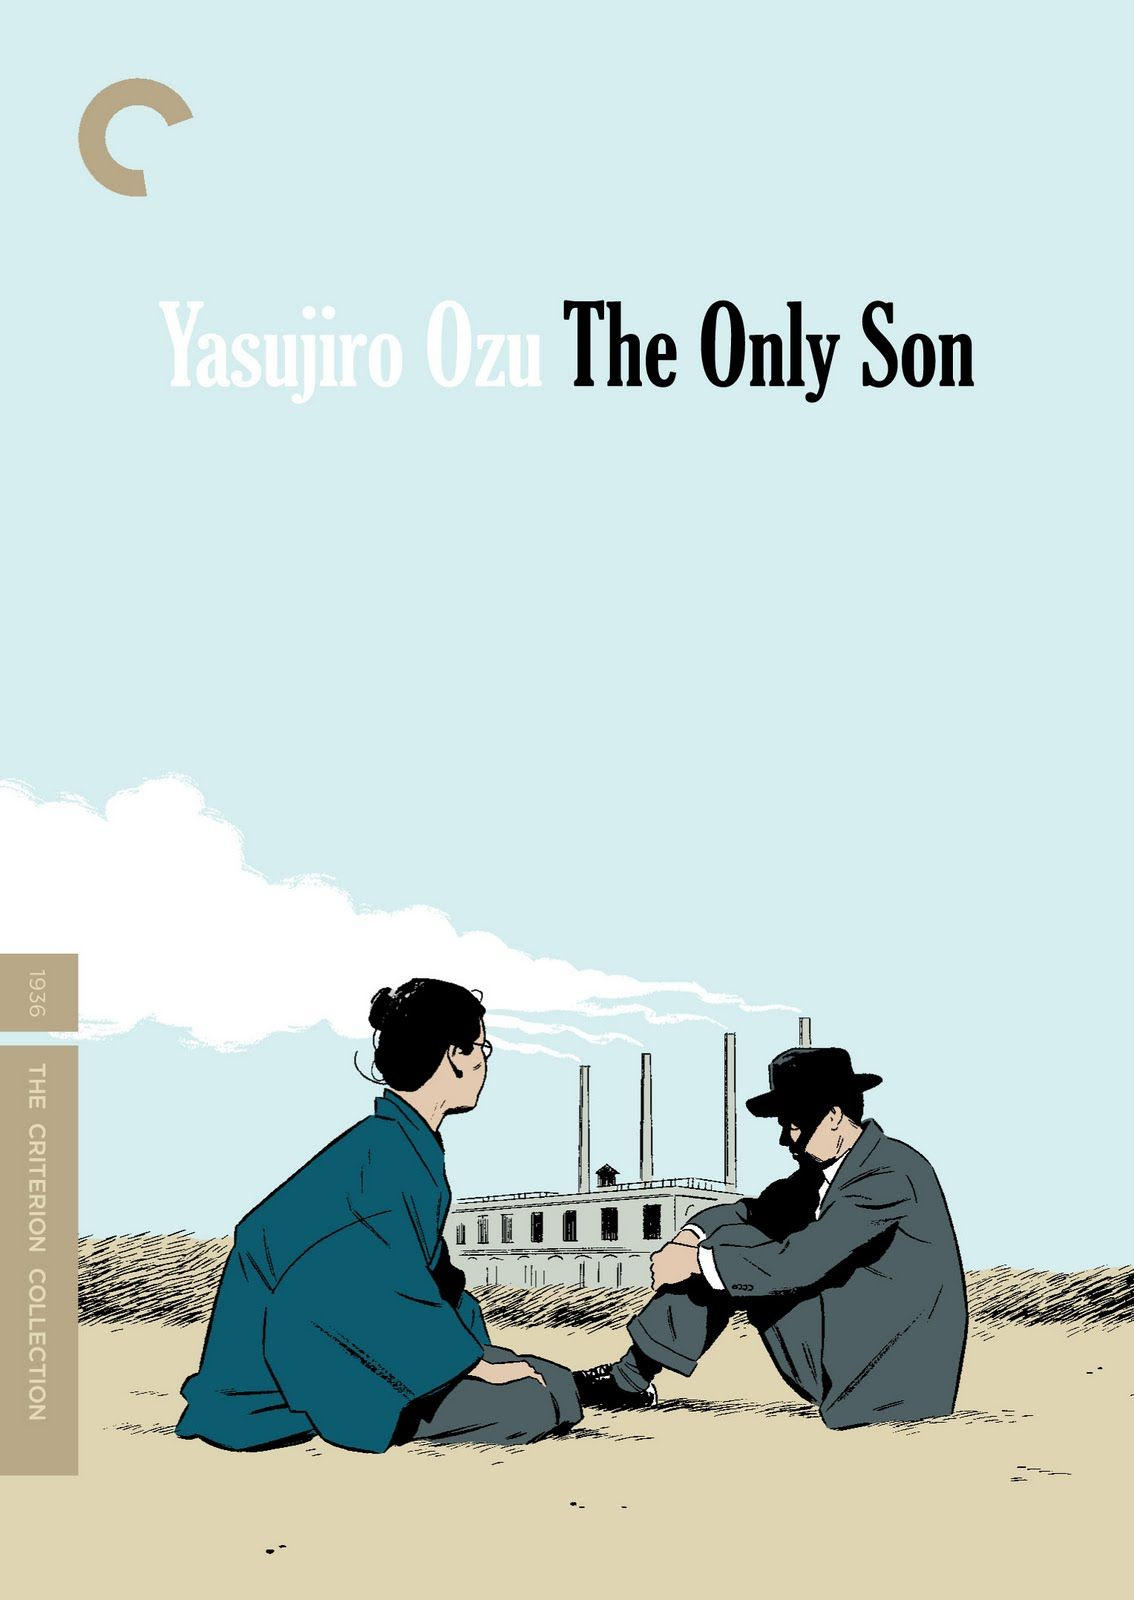 Adrian Tomine covers Yasujiro Ozu for The Criterion Collection